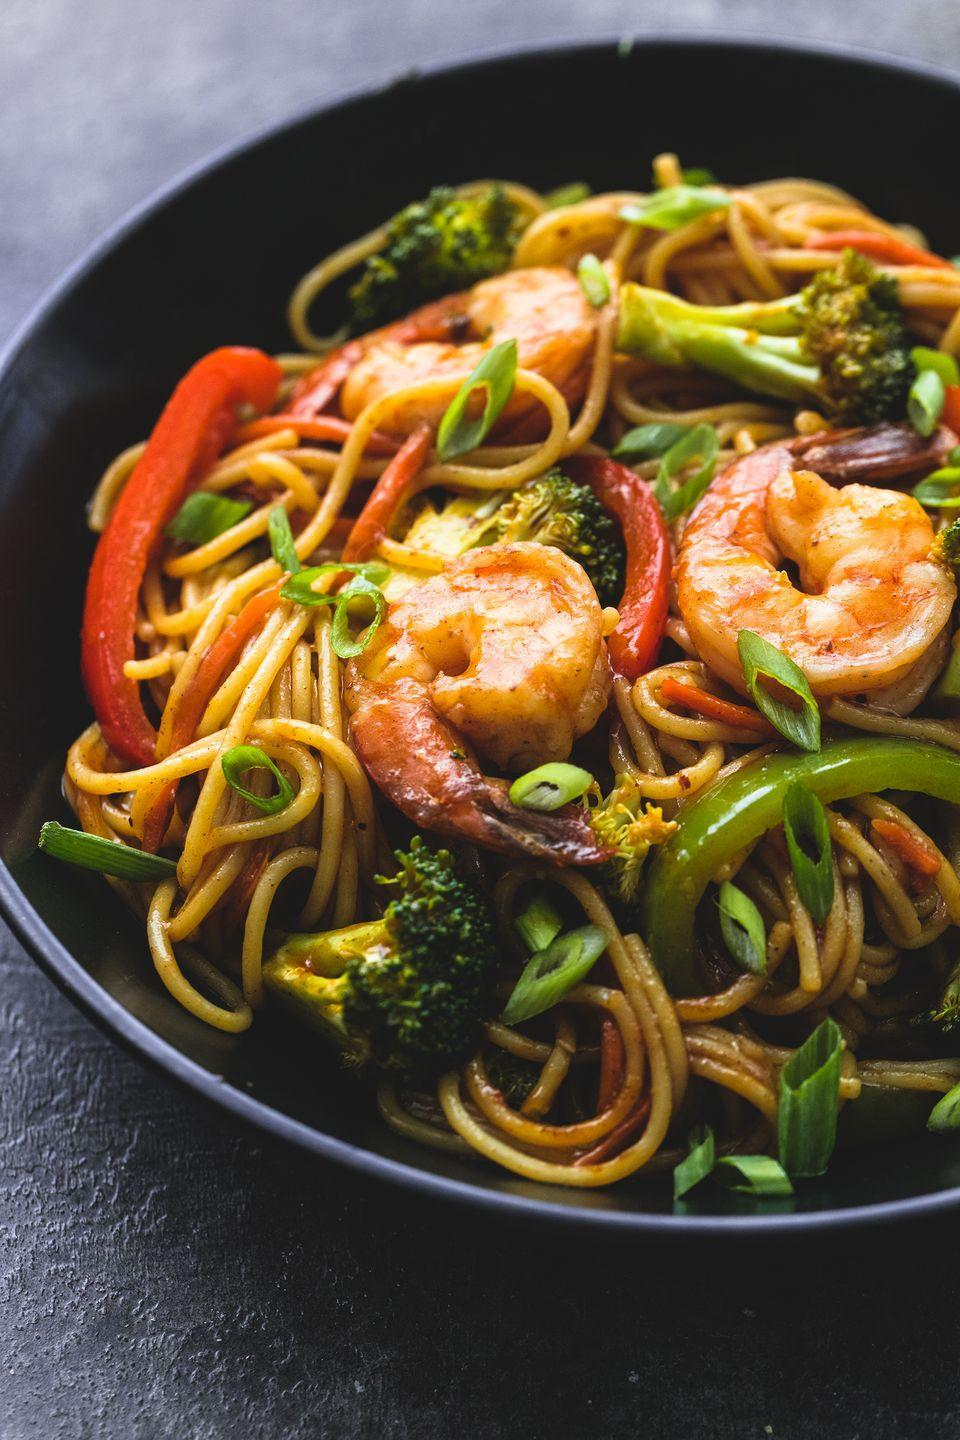 """<p>Takeout? This is better.</p><p>Get the recipe from <a href=""""/cooking/recipes/a53595/shrimp-broccoli-lo-mein-recipe/"""" data-ylk=""""slk:Delish"""" class=""""link rapid-noclick-resp"""">Delish</a>.</p>"""